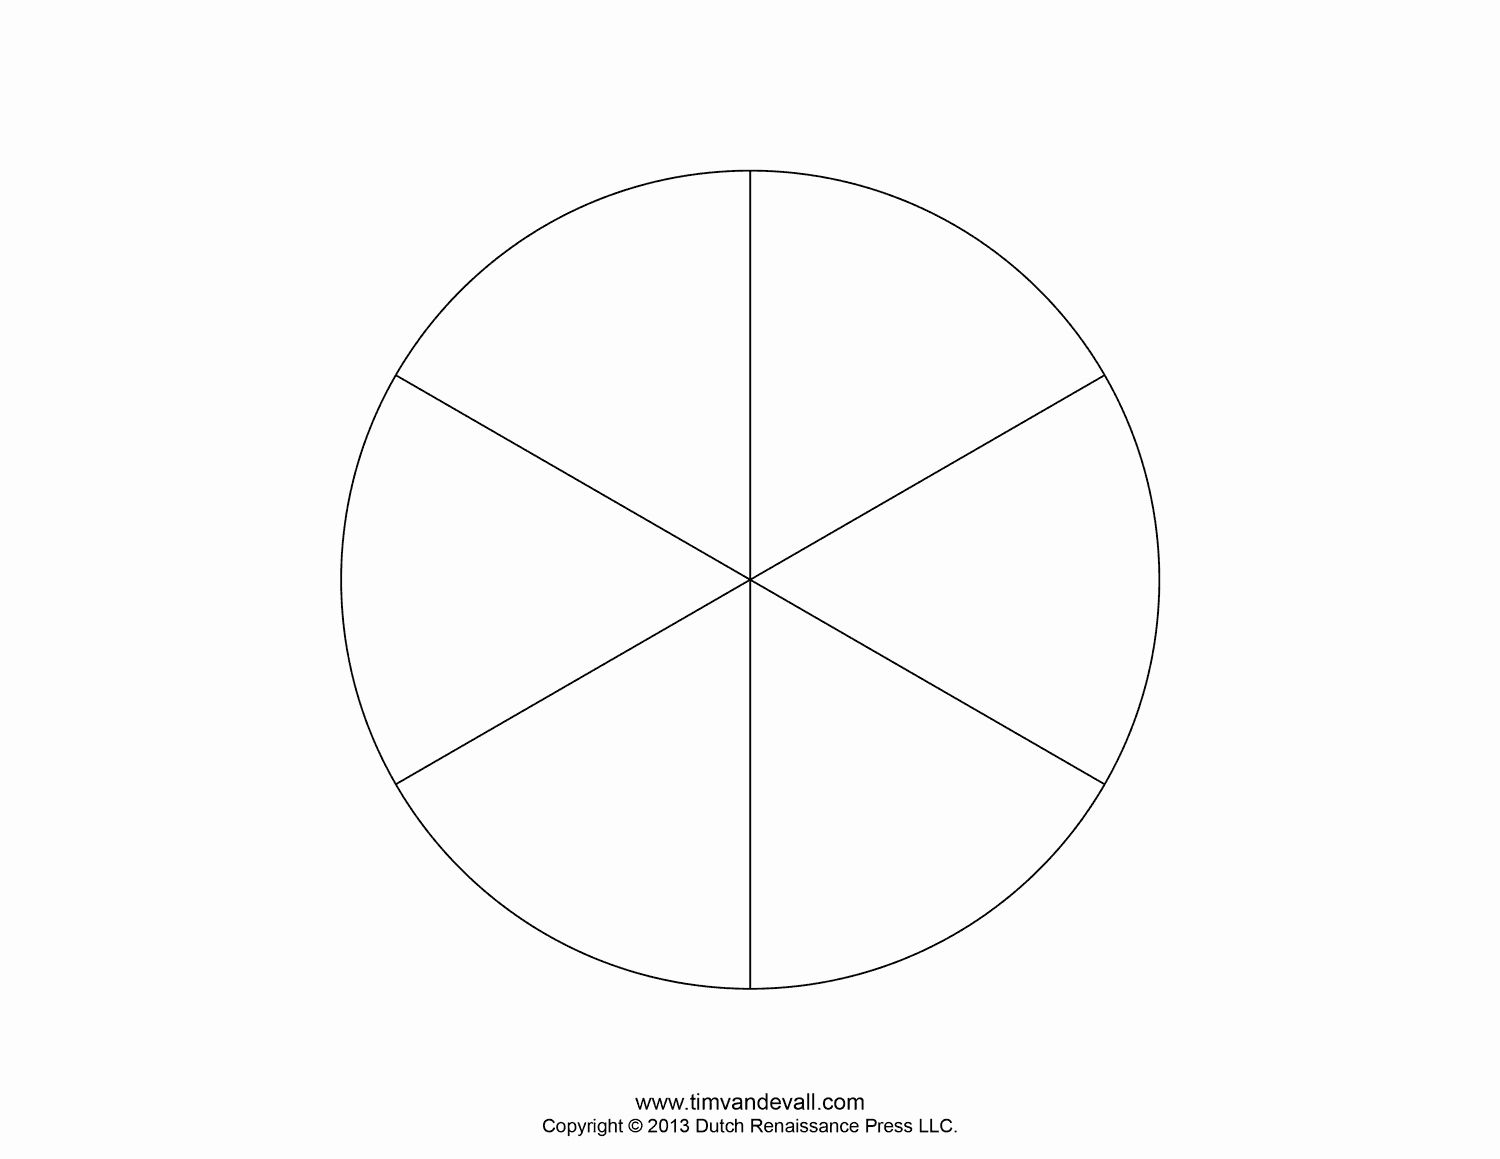 Blank Pie Chart Template Awesome Blank Pie Chart Templates